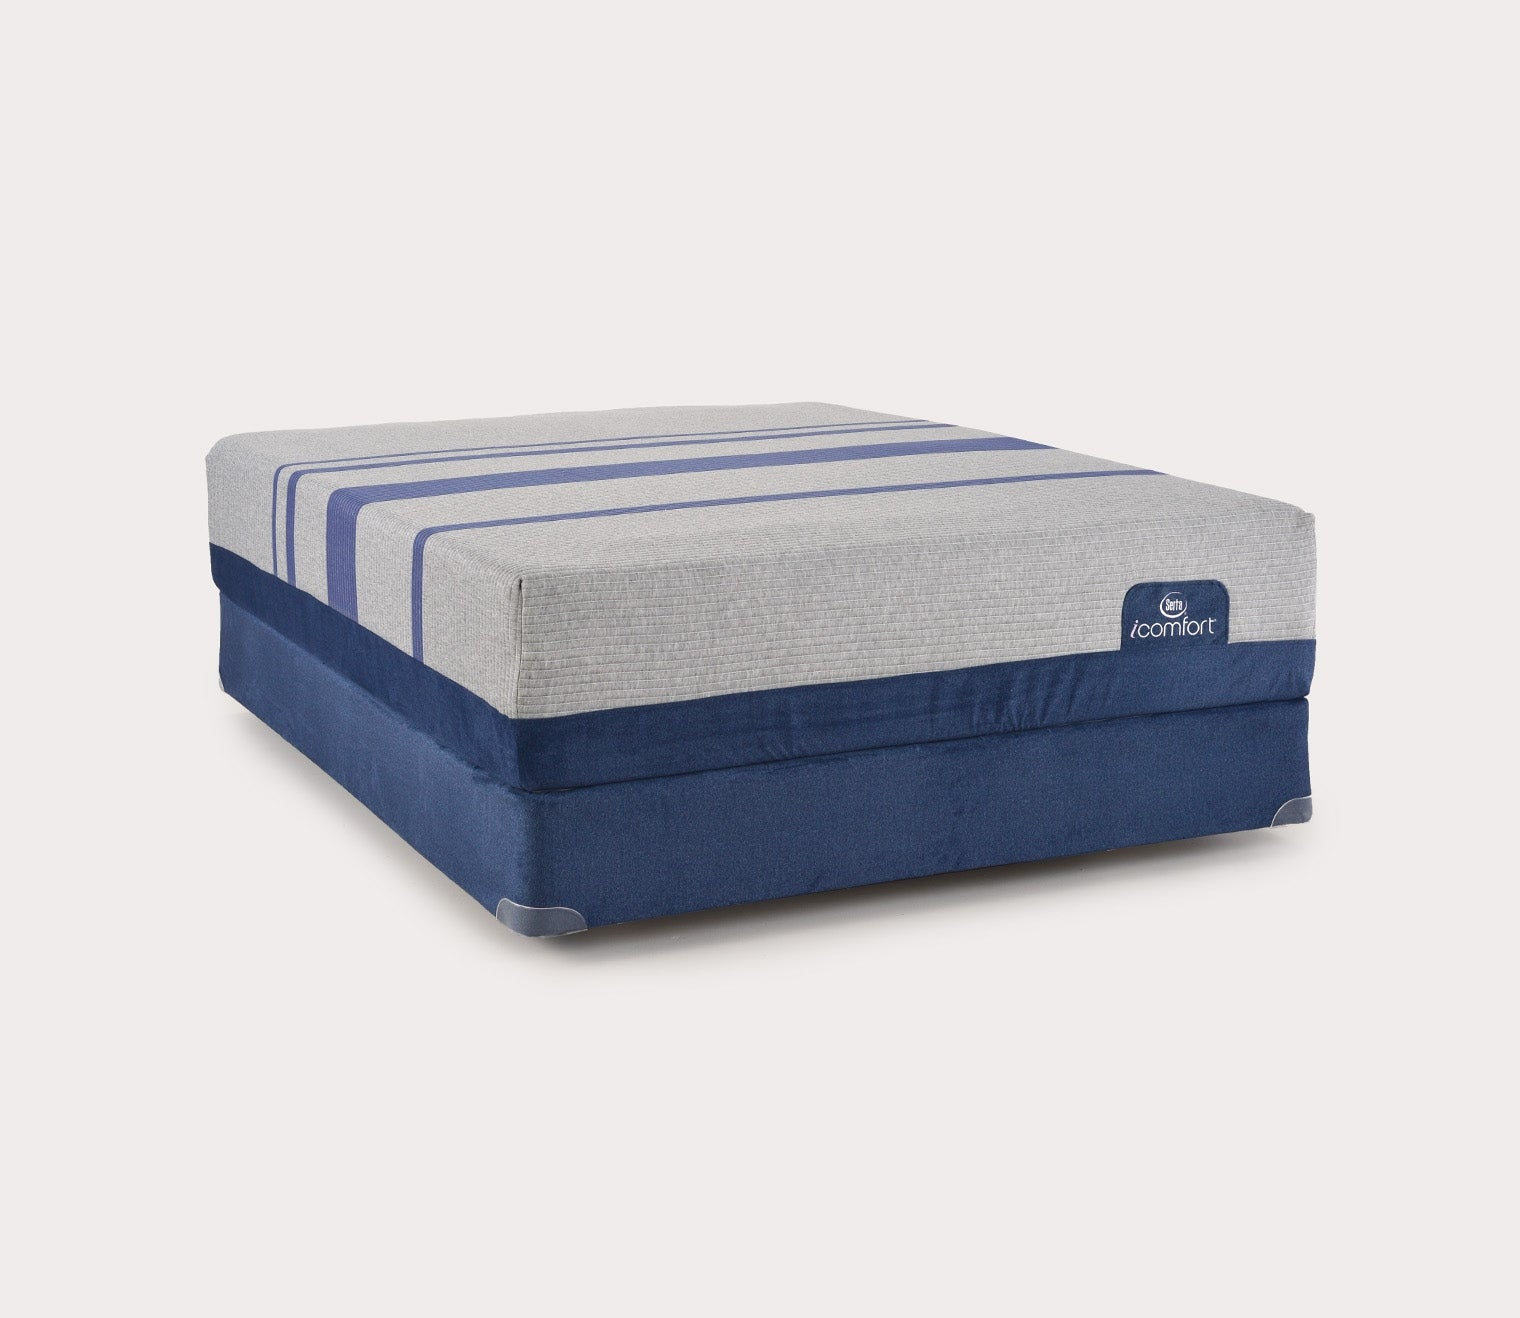 i icomfort serta sleepworks bed hybrid firm applause sleepworksny comfort product com